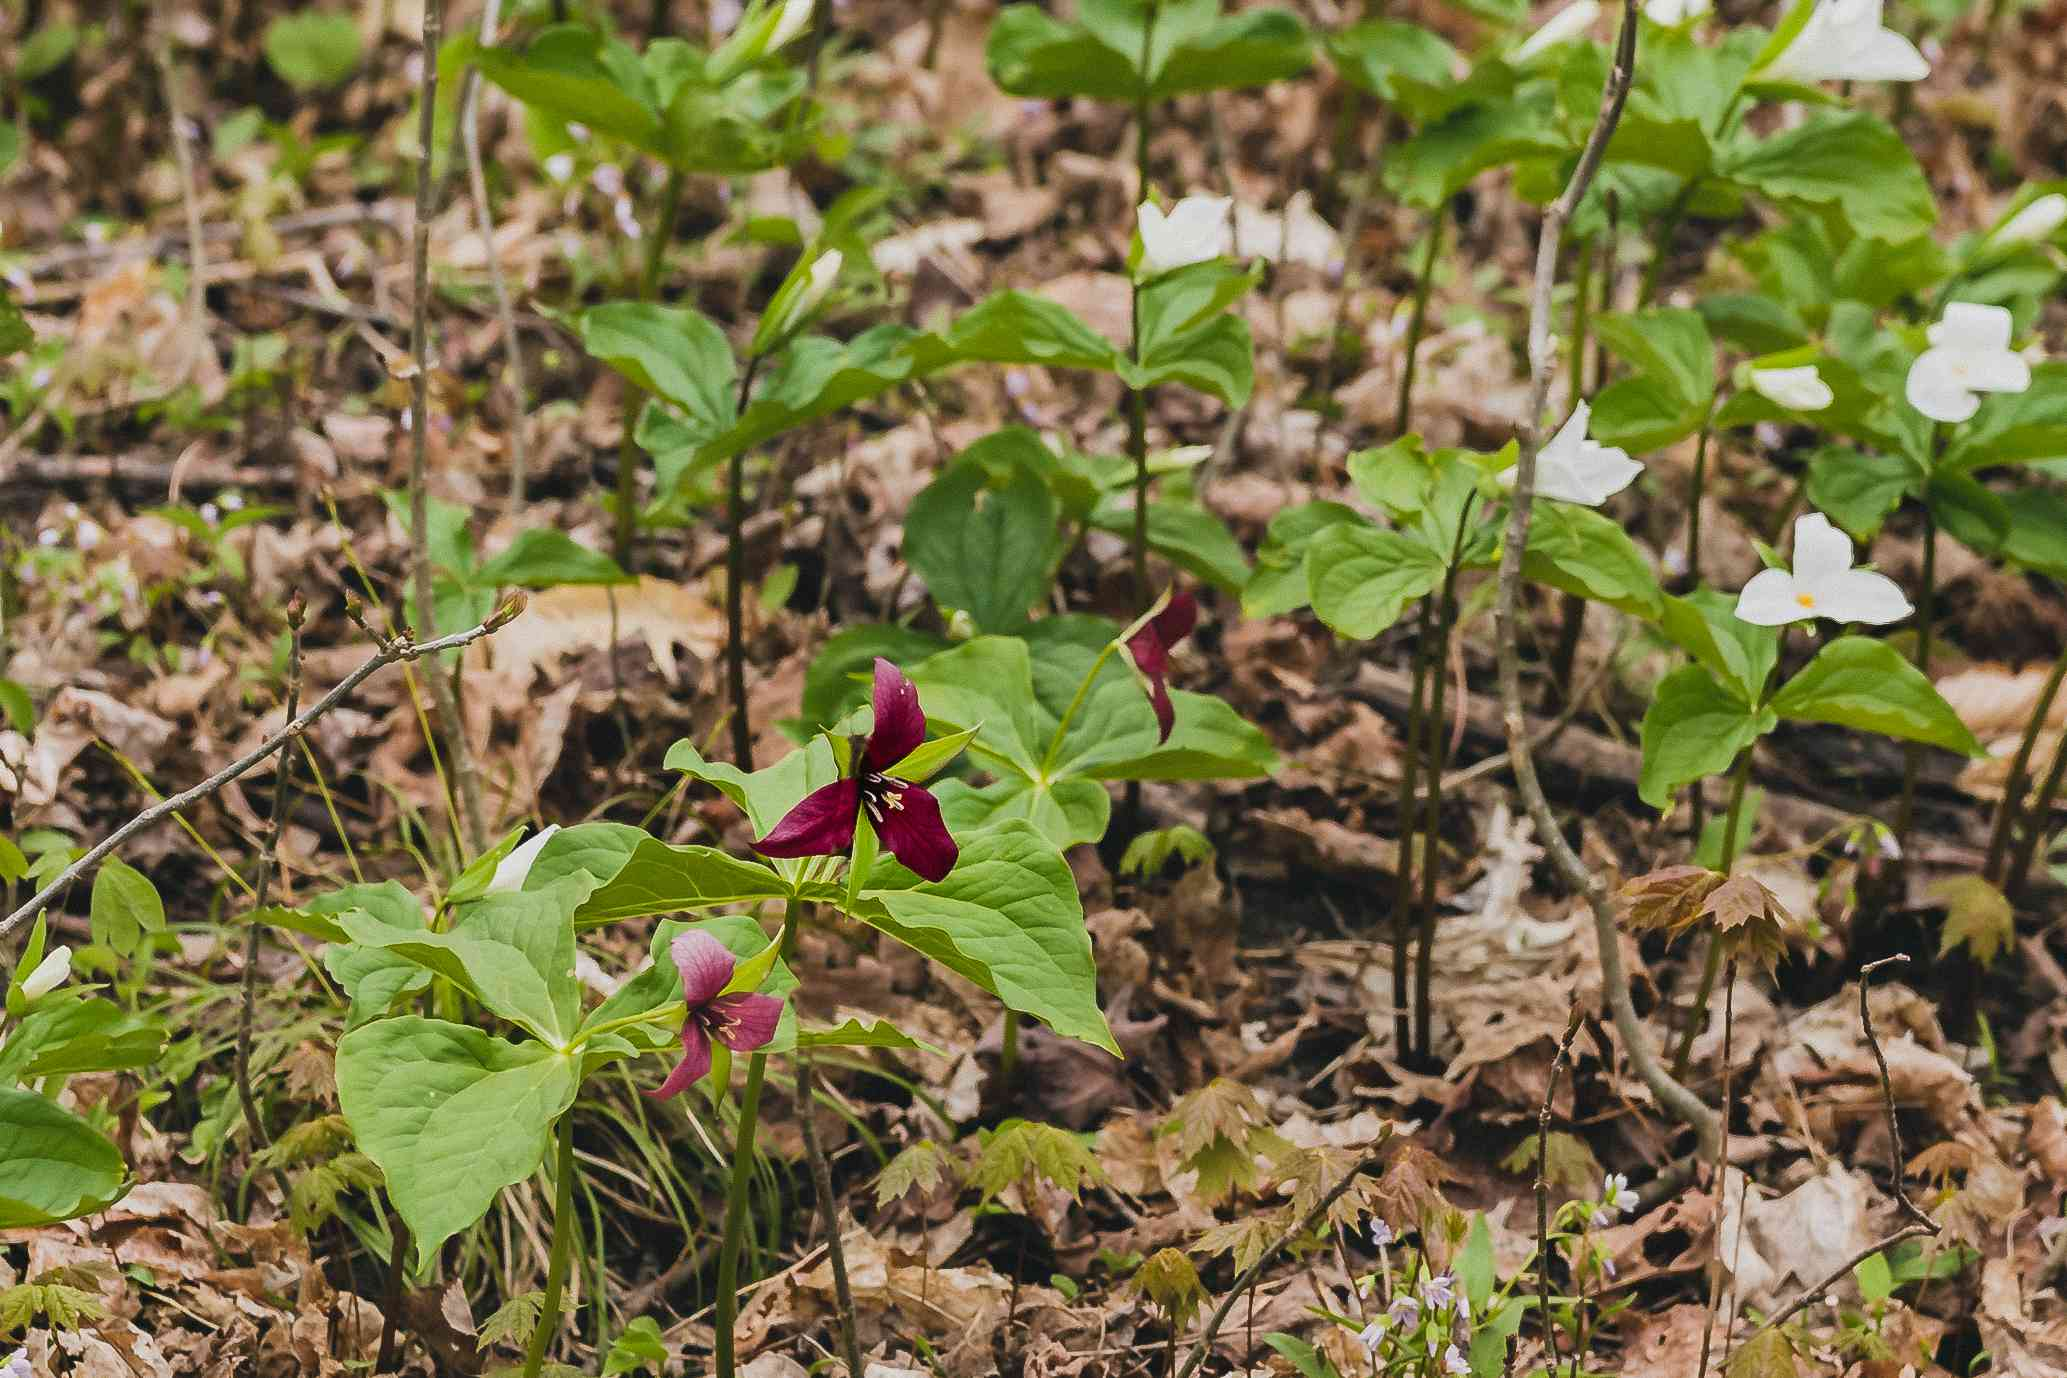 Trillium plants in wooded area with white and purple flowers surrounded by large leaves